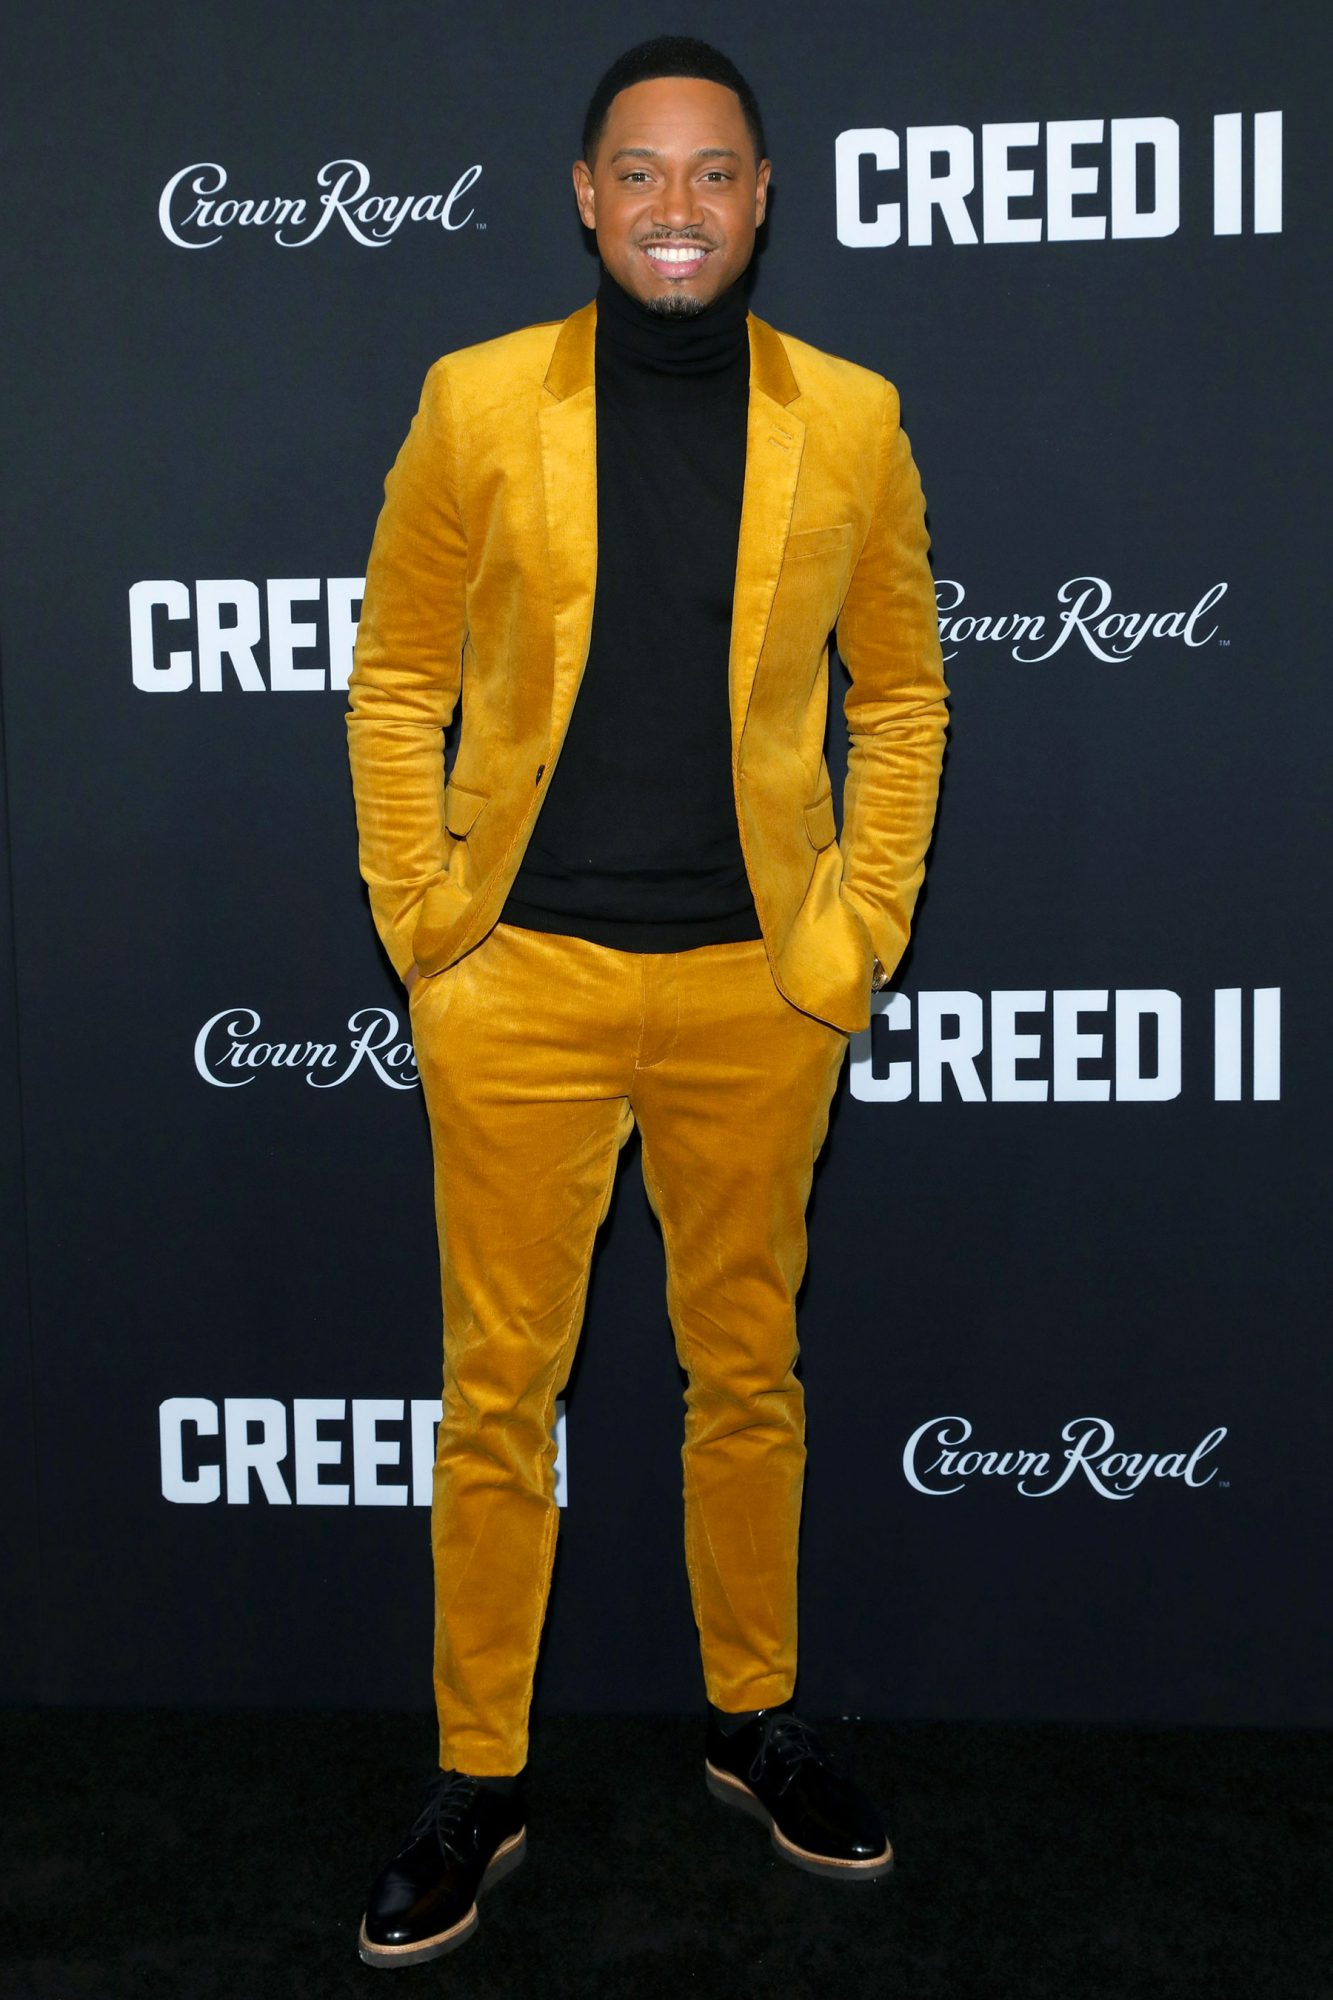 'Creed II' film premiere, Arrivals, New York, USA - 14 Nov 2018